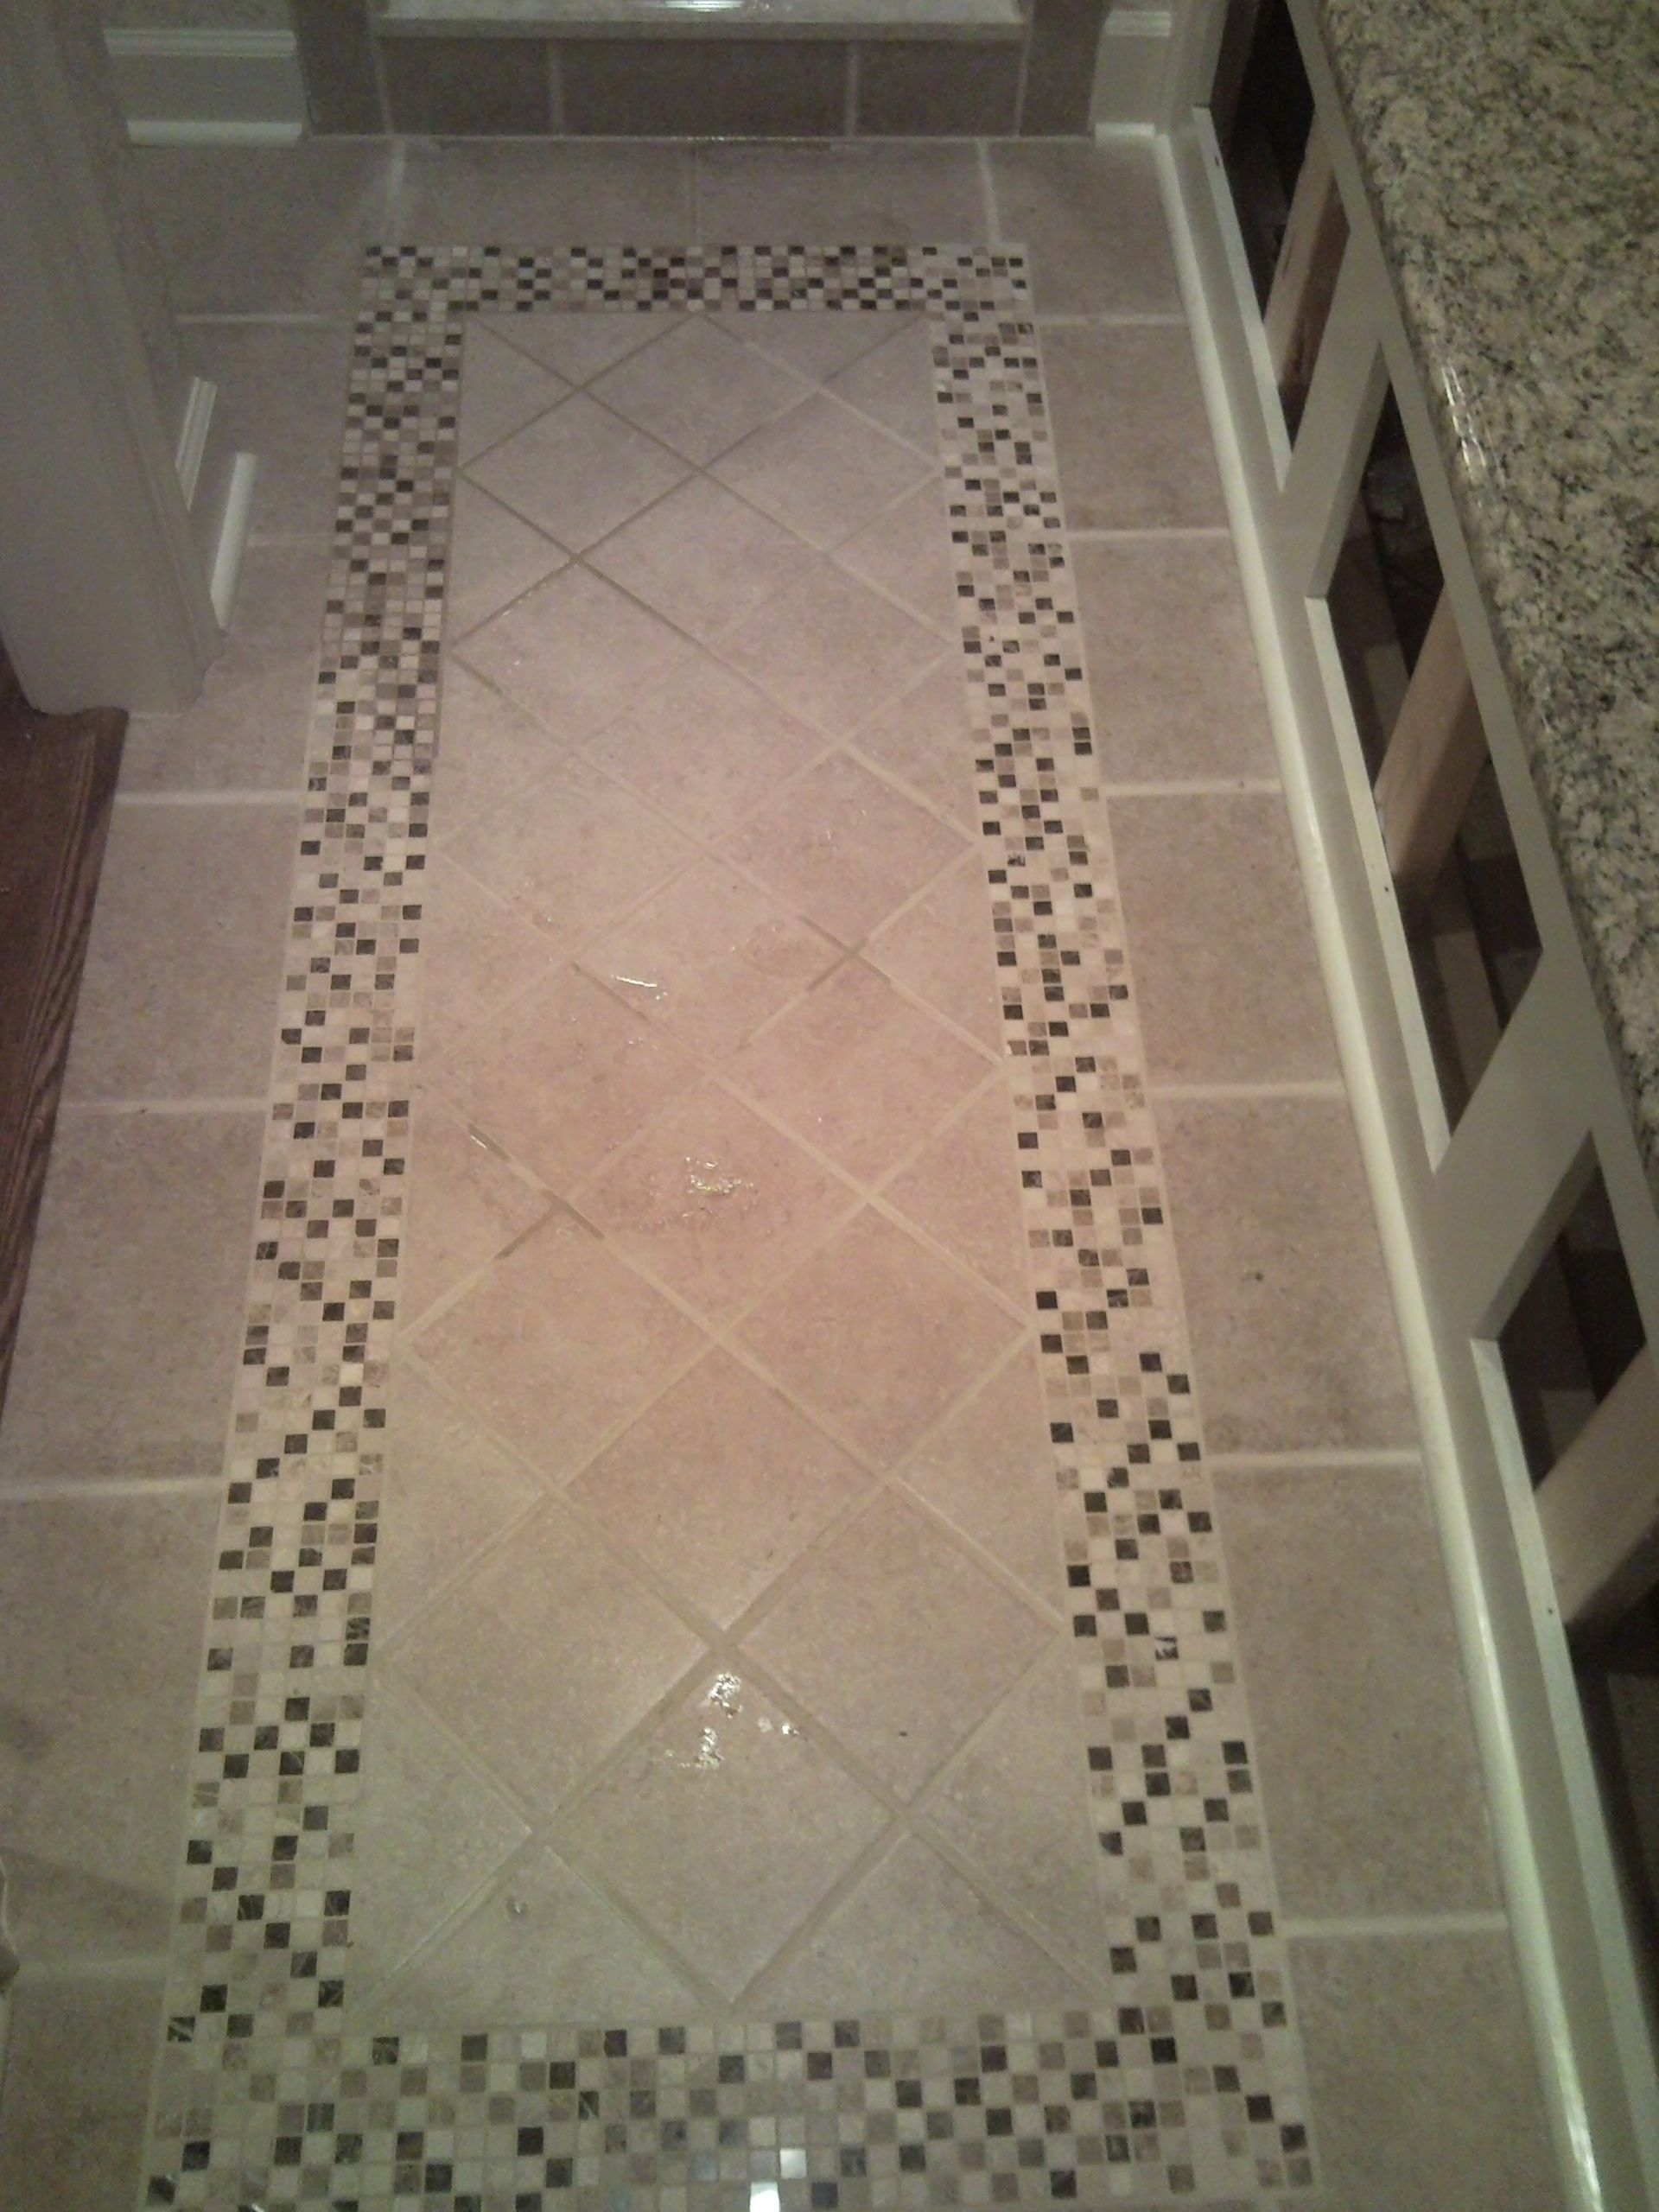 Awesome Tile Floor With Inlaid Design Leading To The Custom Shower. Part 28